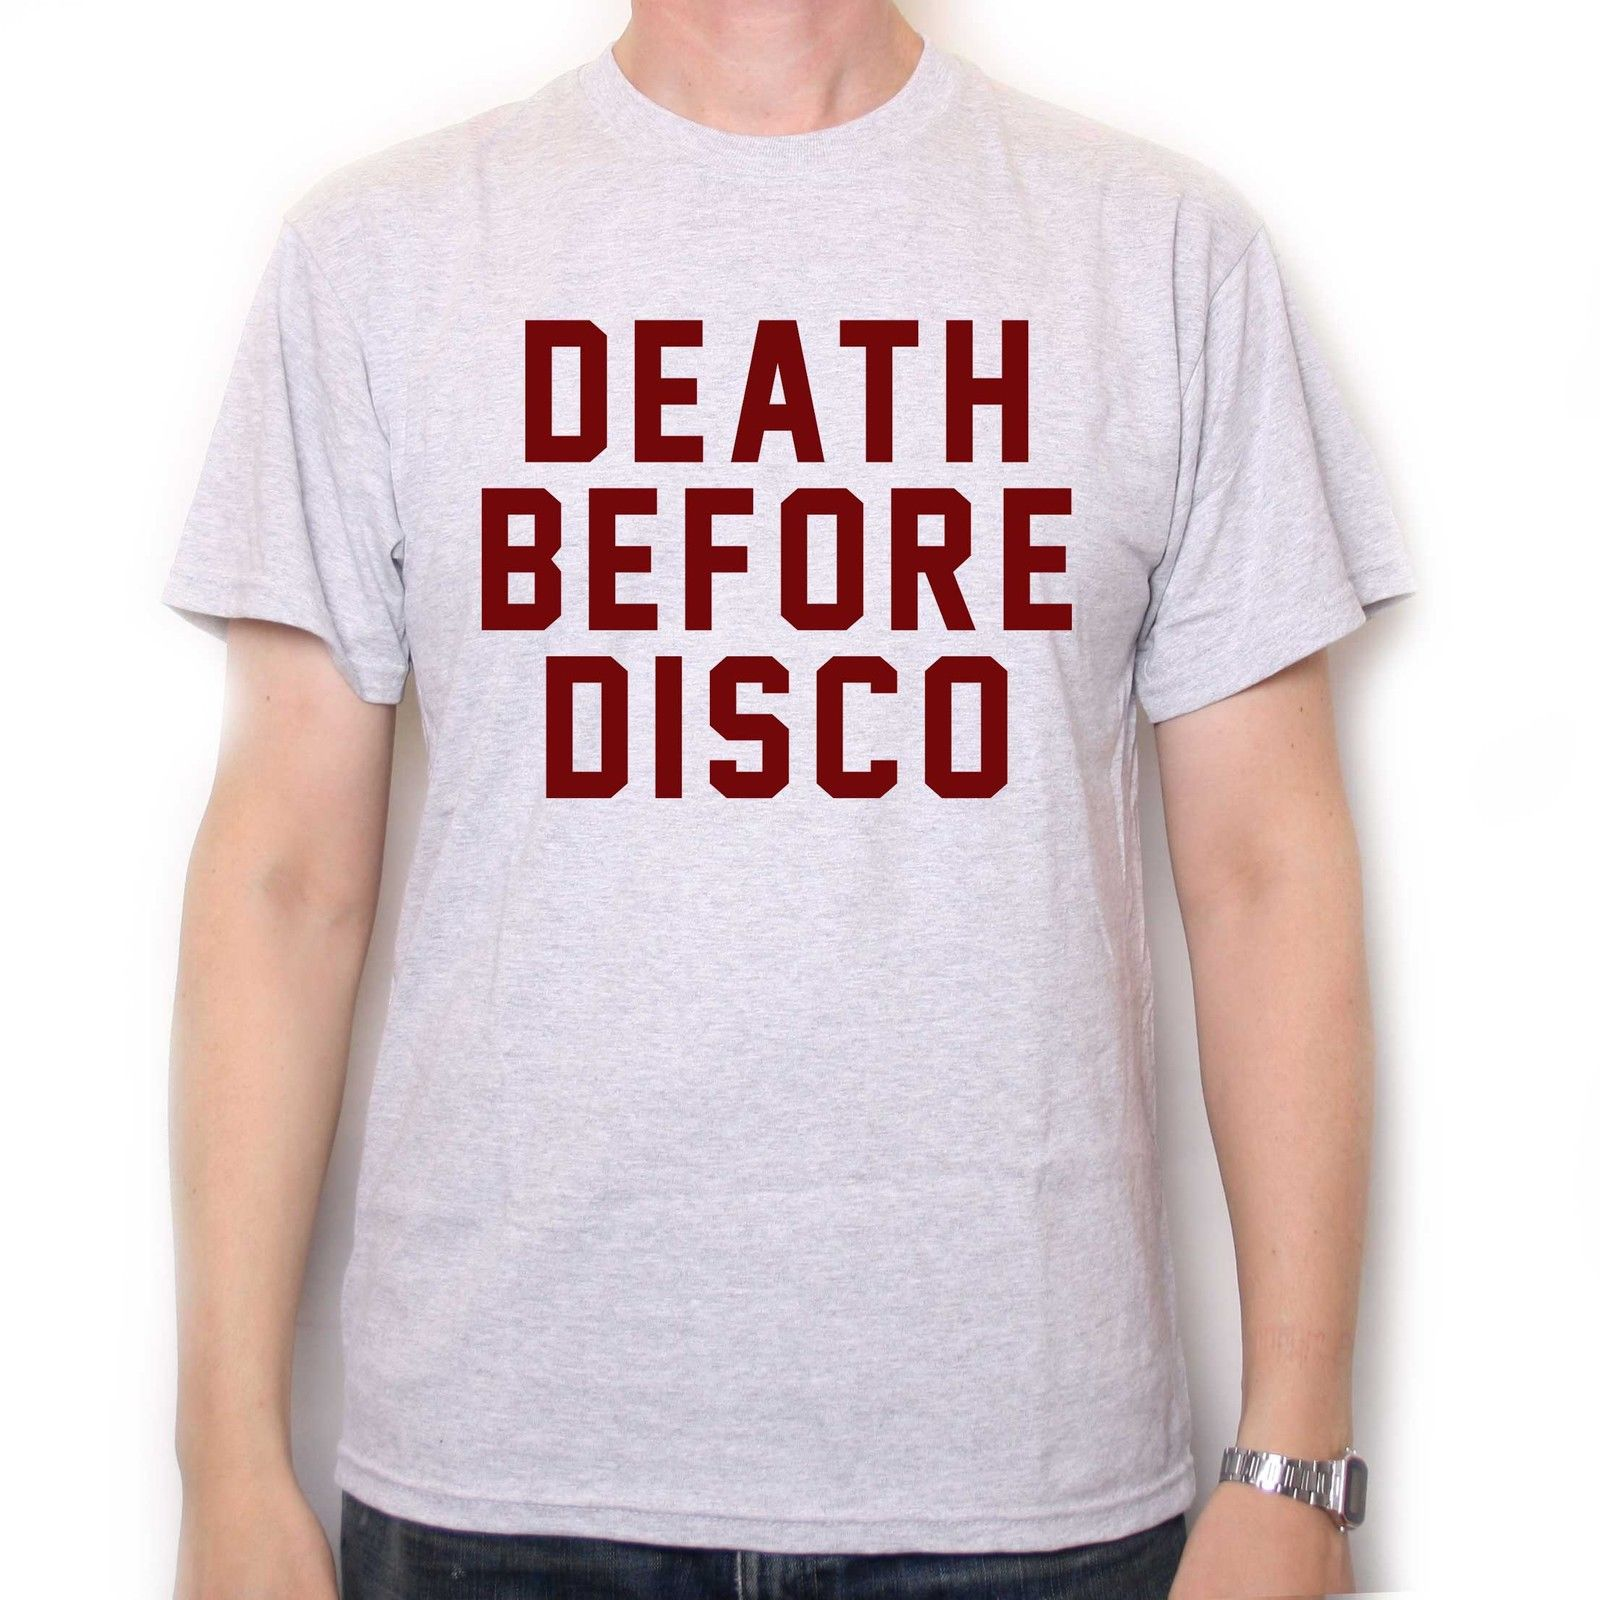 Death Before Disco T Shirt As Worn By Judge Reinhold In Stripes Cult Film Movie Summer Men'S fashion Tee,Comfortable t shirt